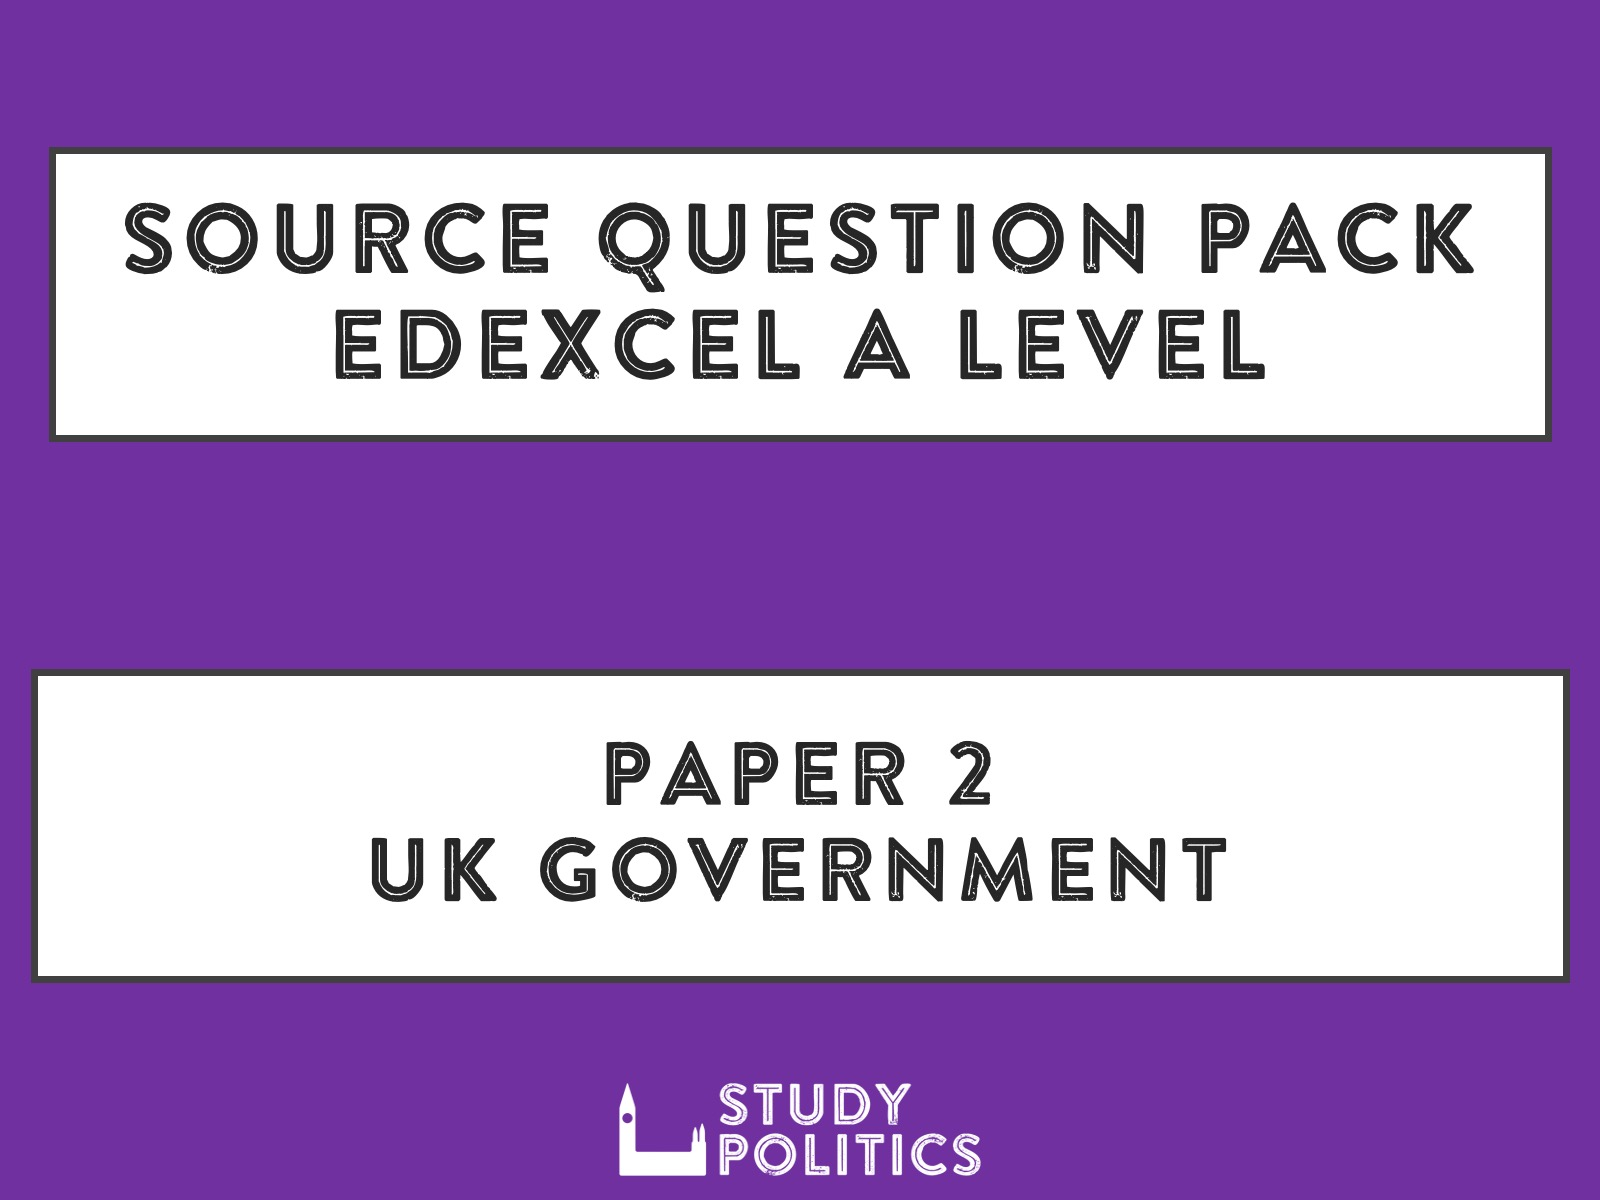 Source Question Pack for Edexcel A Level Paper 2